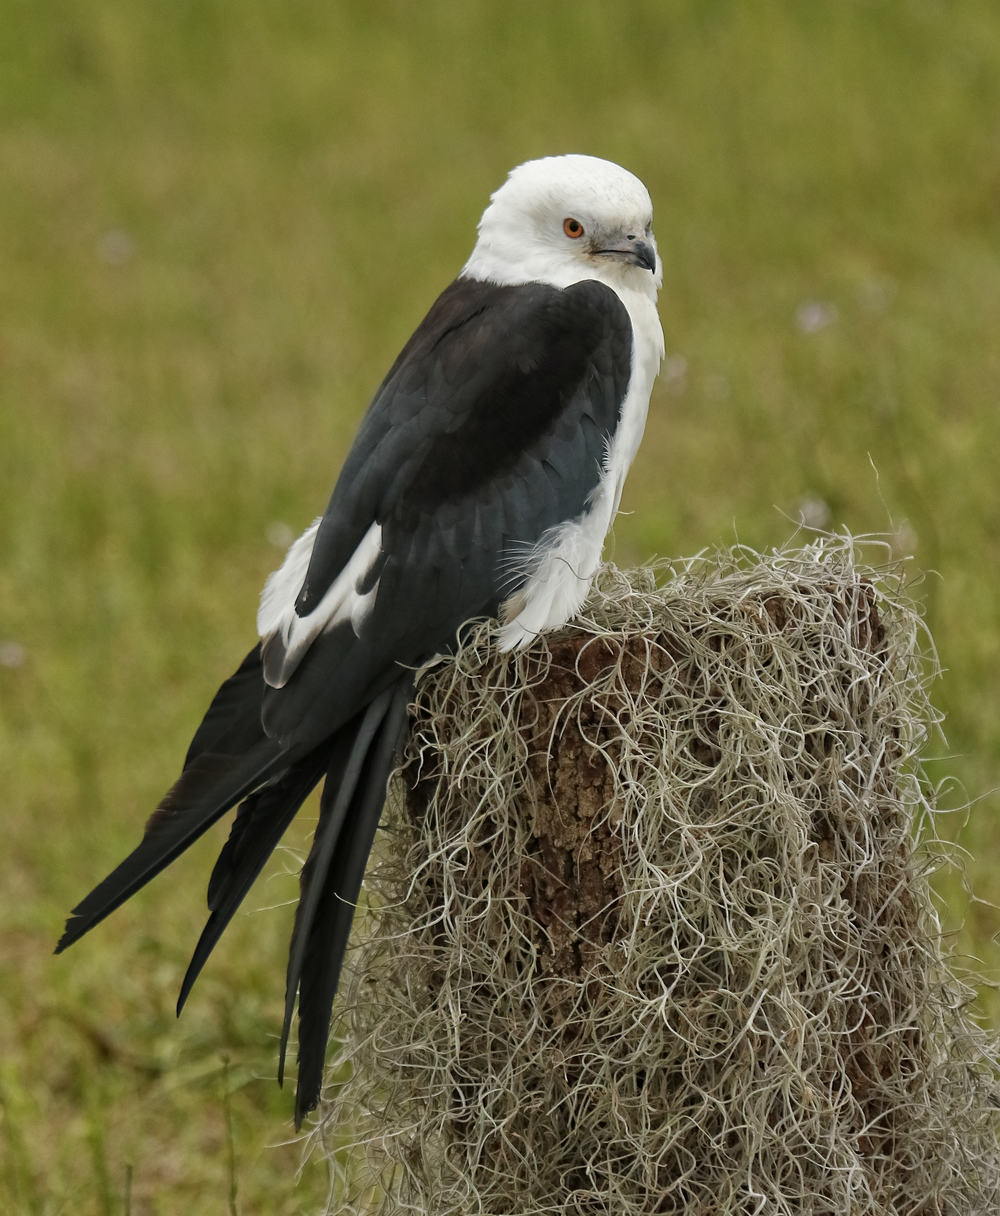 Scooter, Swallow Tailed Kite separated at an early age from parents and imprinted with humans.